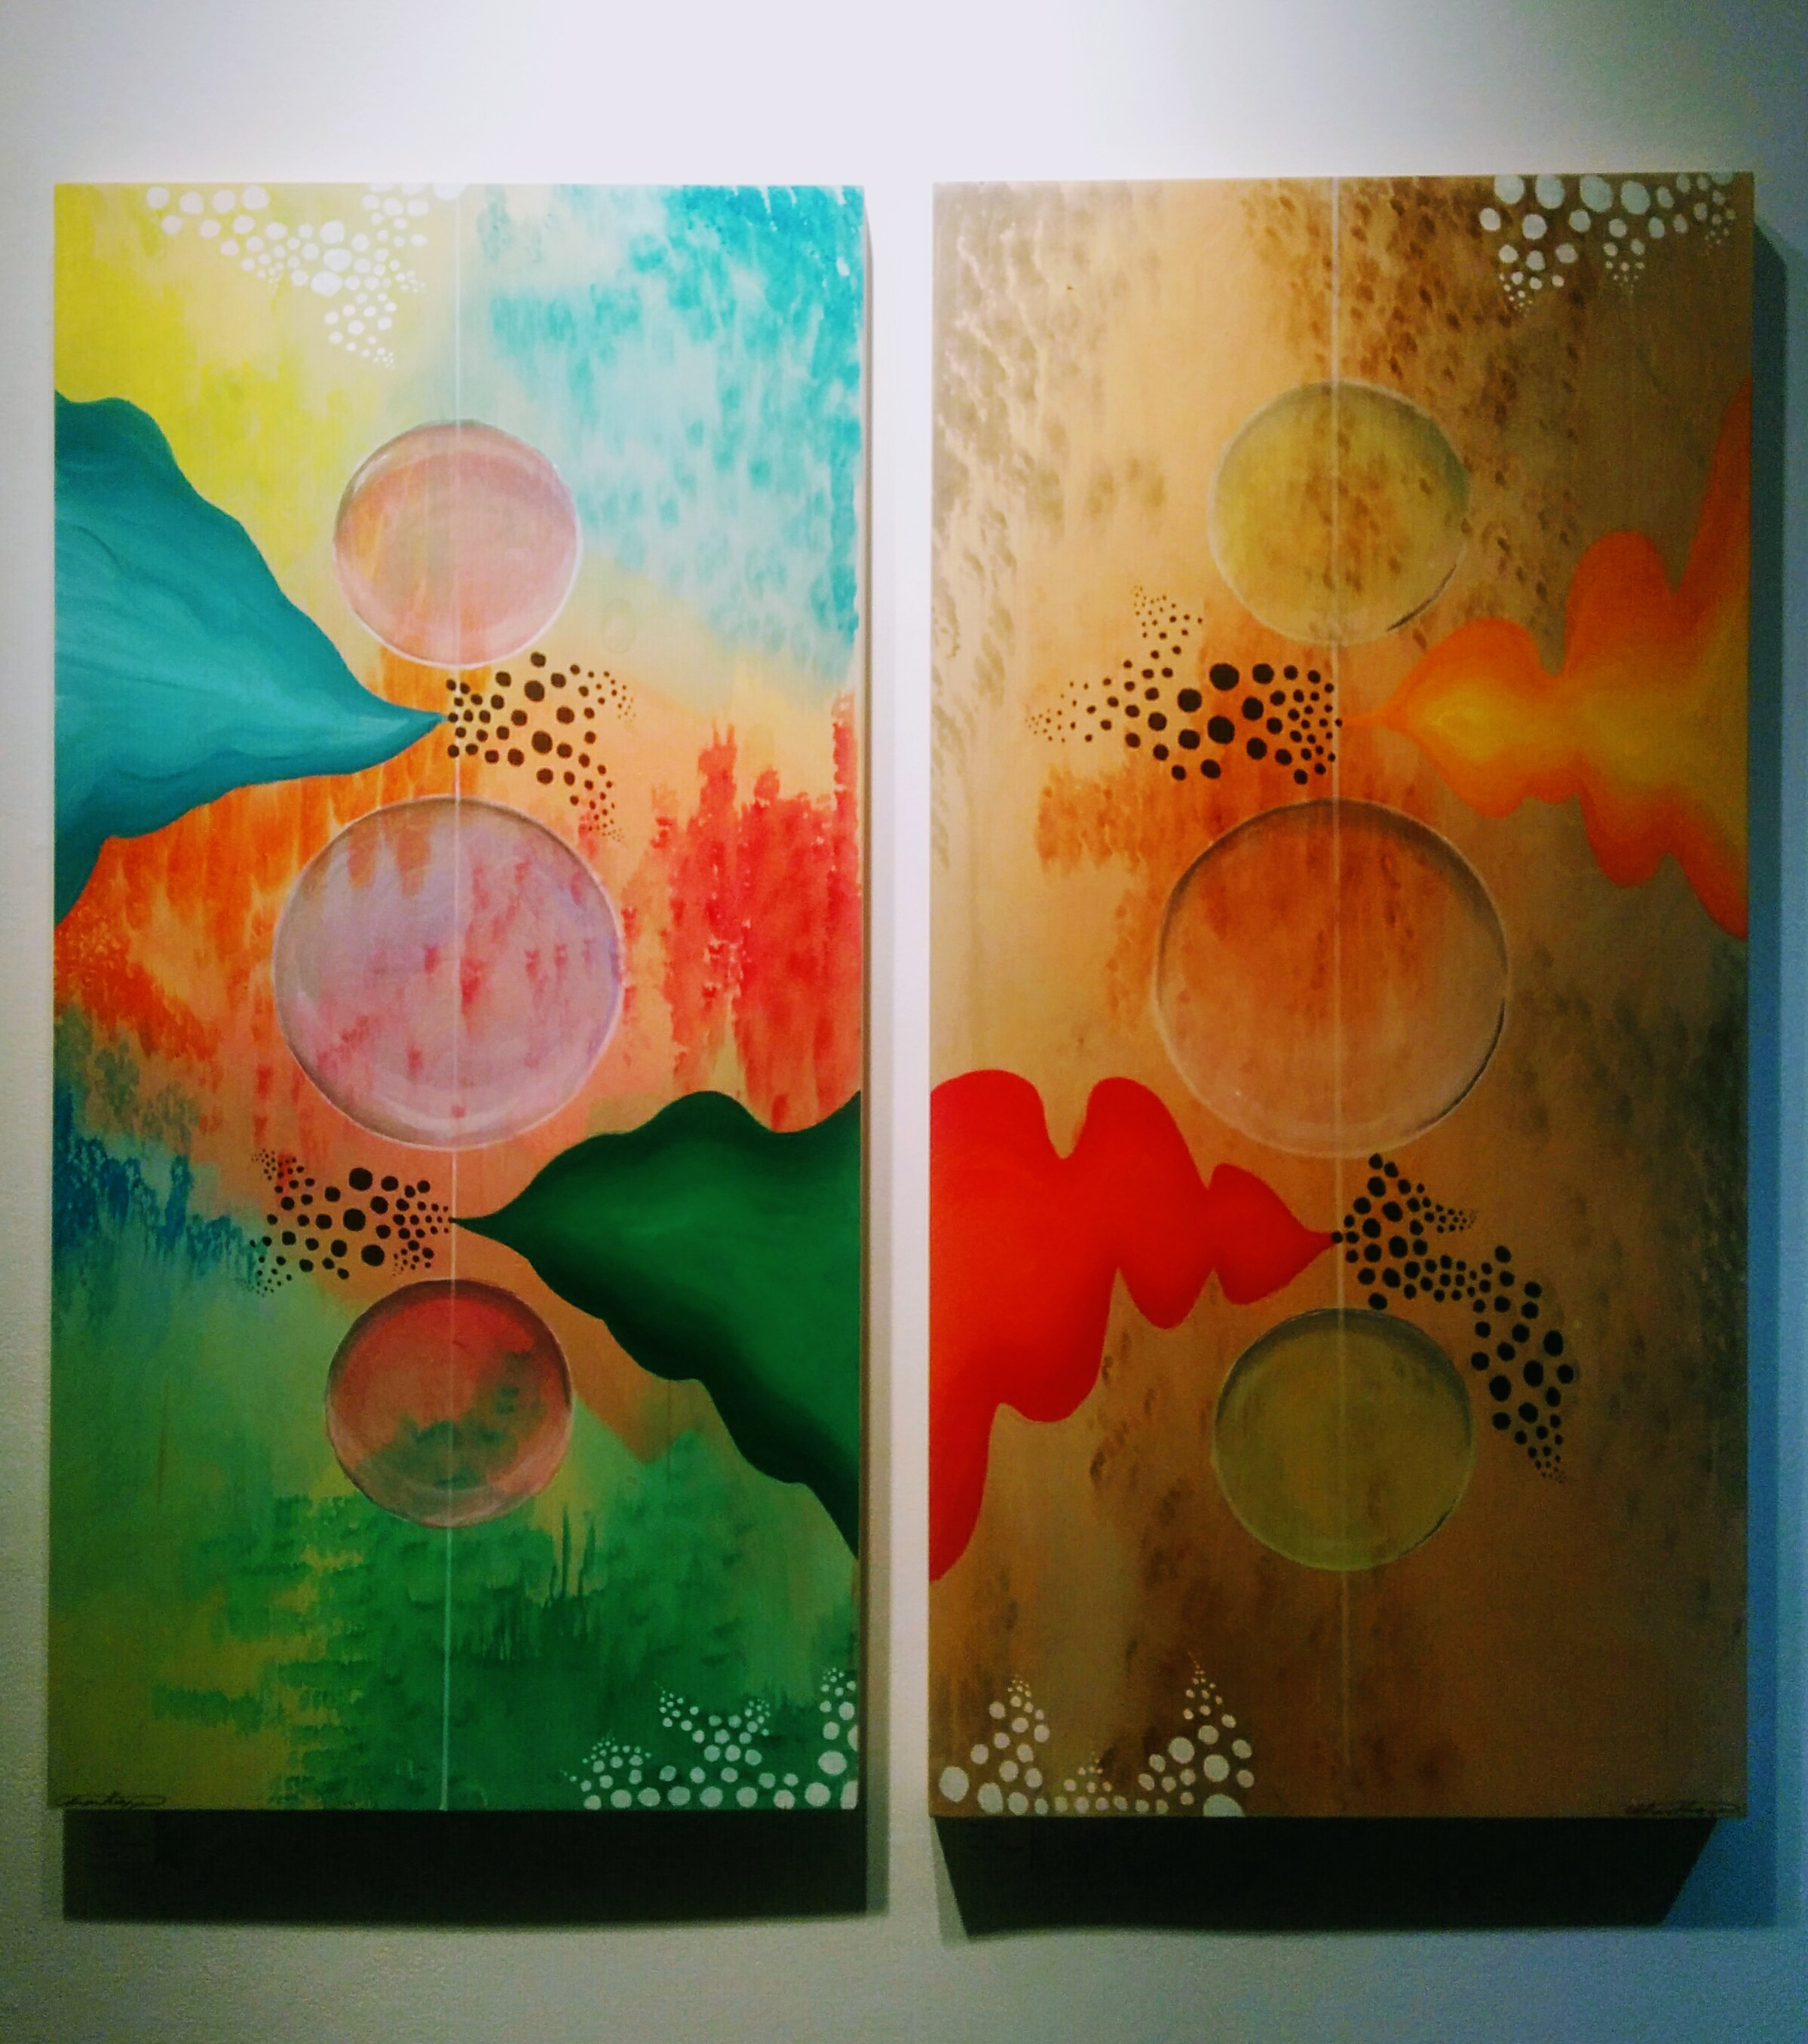 Catherine Harasymiw,  Cosmos A; Cosmos B  (on exhibit at Twist Gallery until Jan 27)